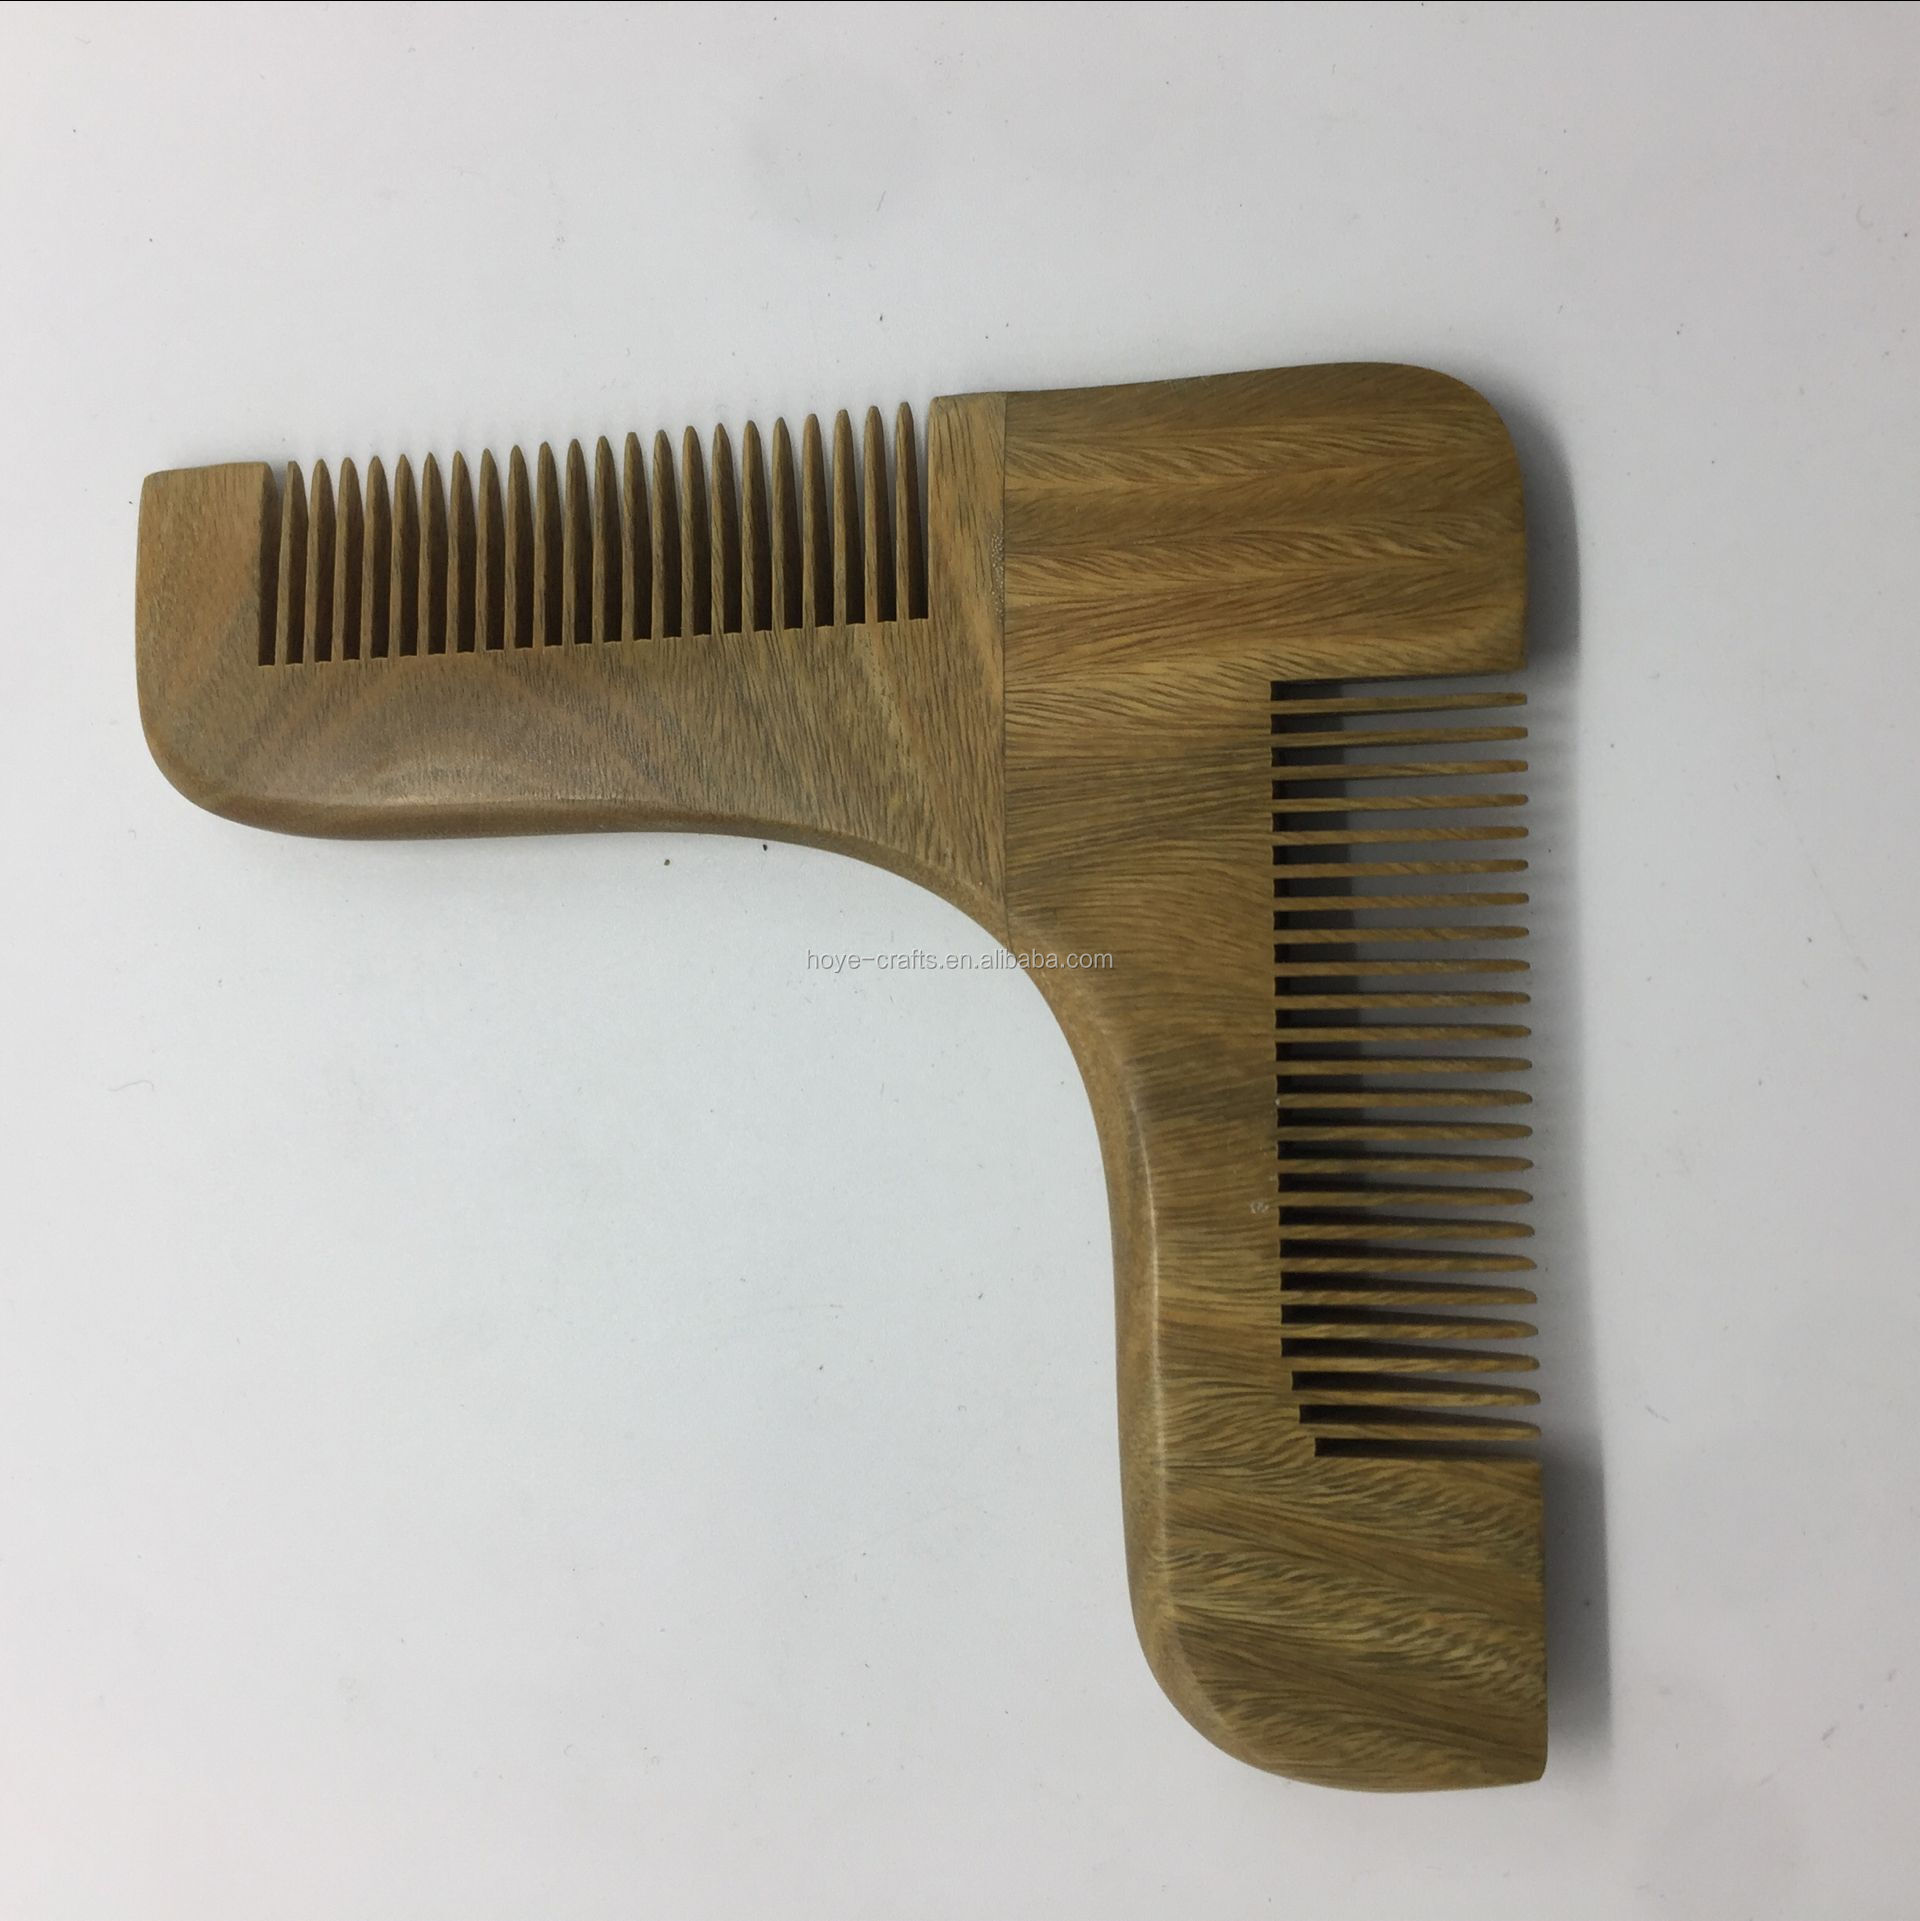 Beard grooming beard comb wooden shaving tool beard Comb sandalwood